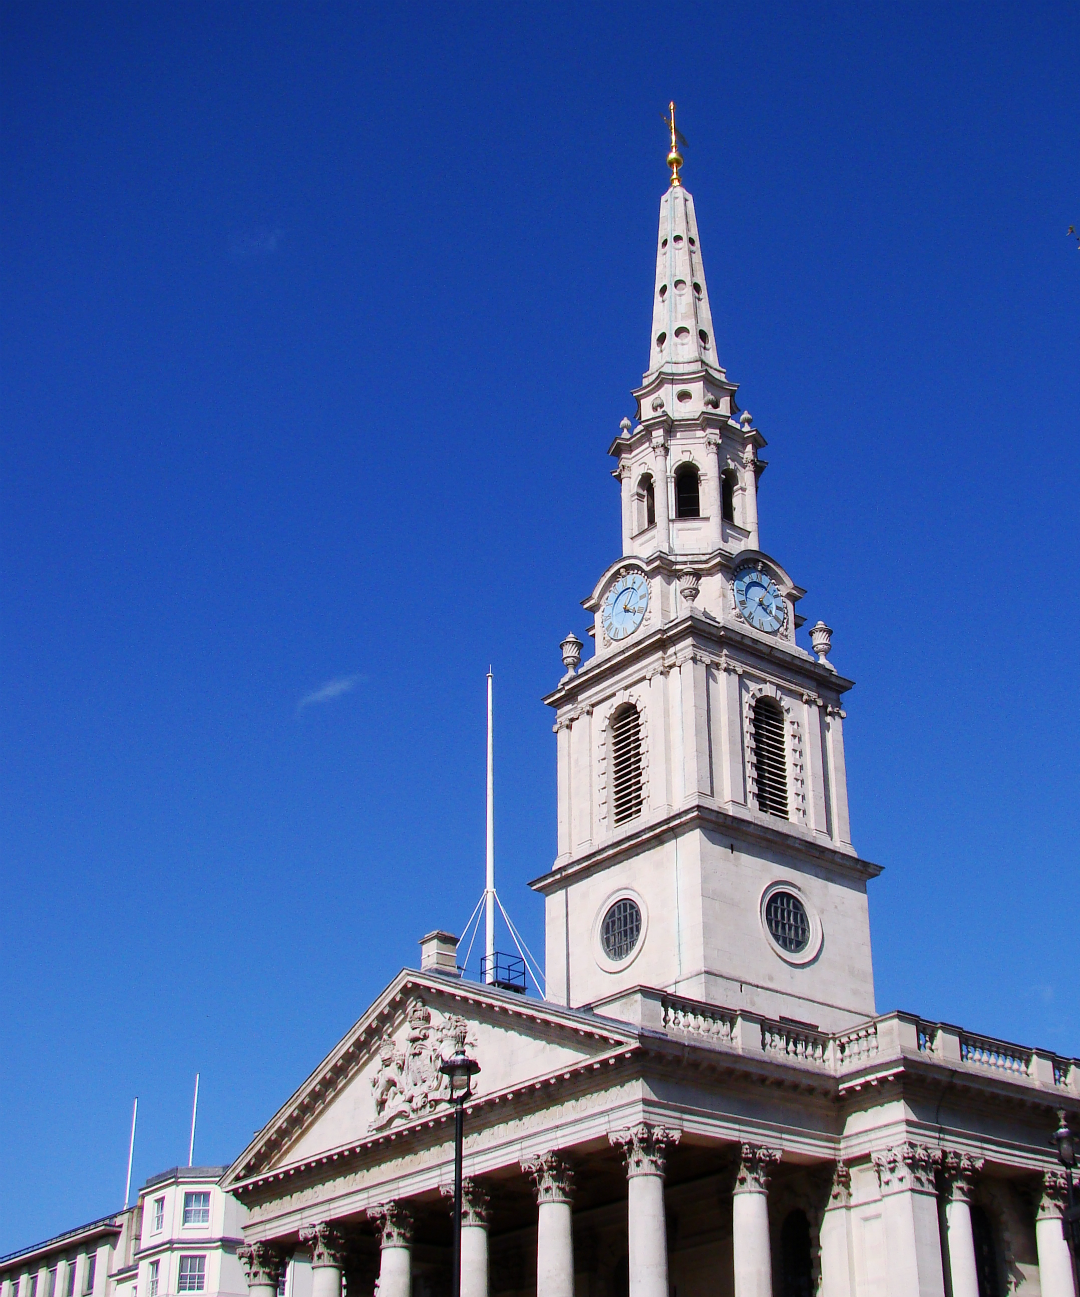 St Martin-in-the-Fields, London, photographed on 4 May 2013